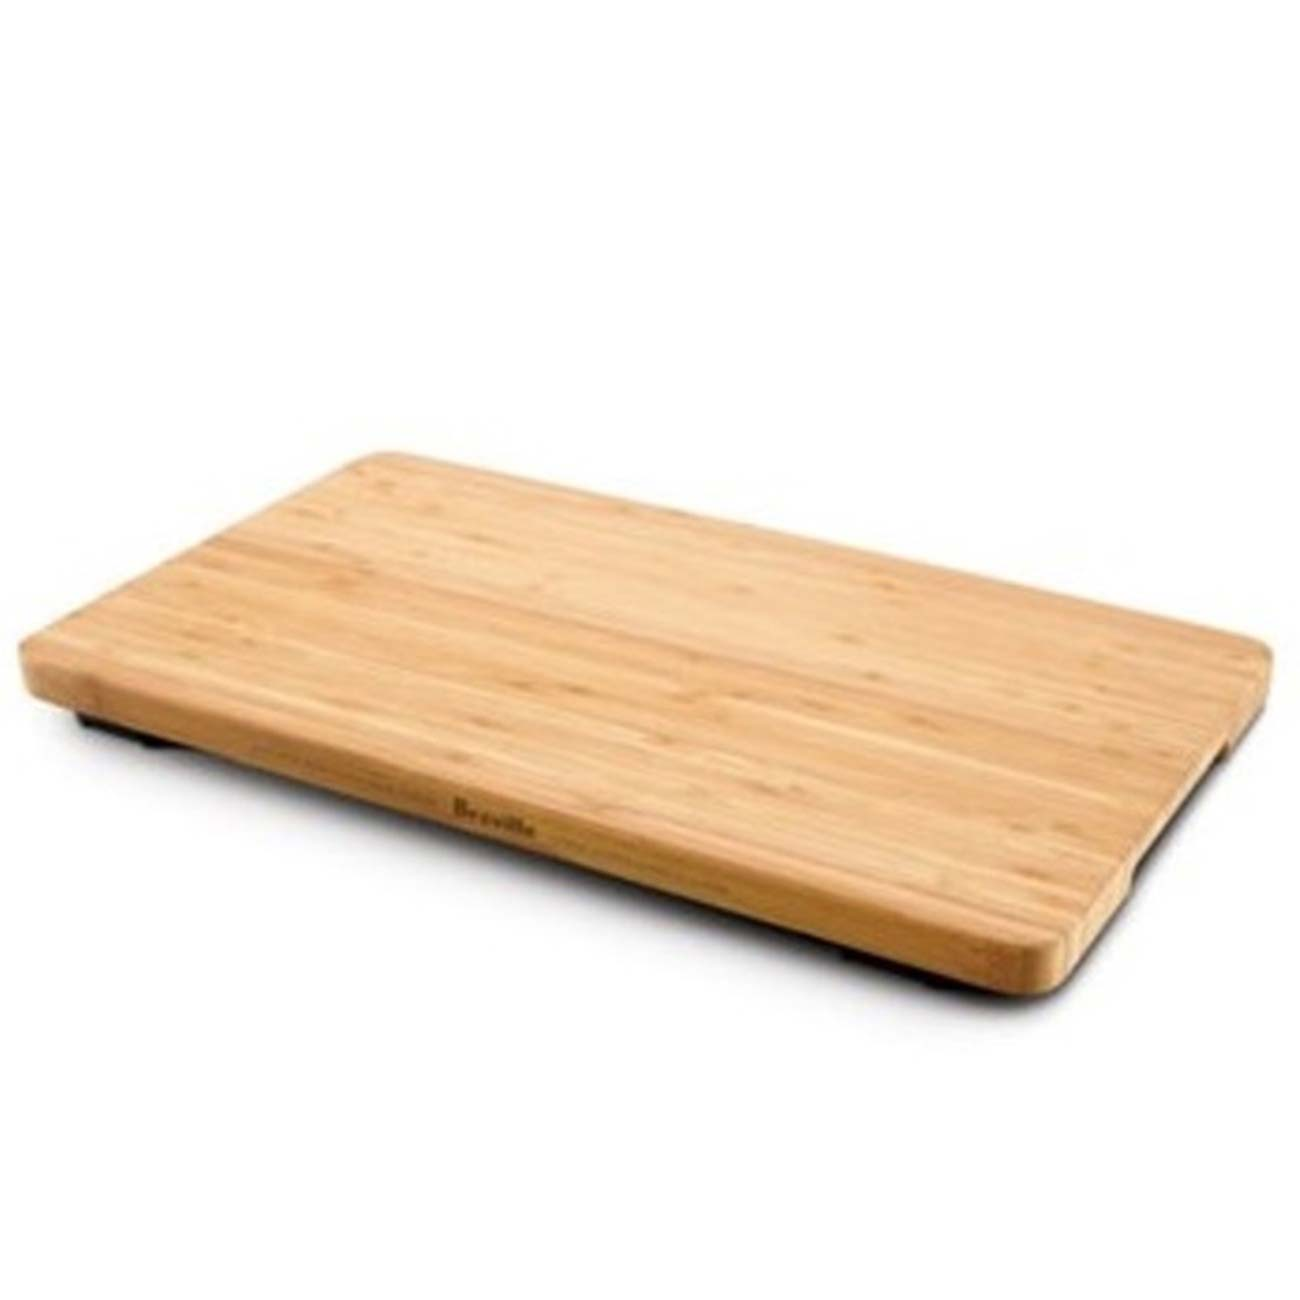 Bamboo Cutting Board for Compact Smart Oven